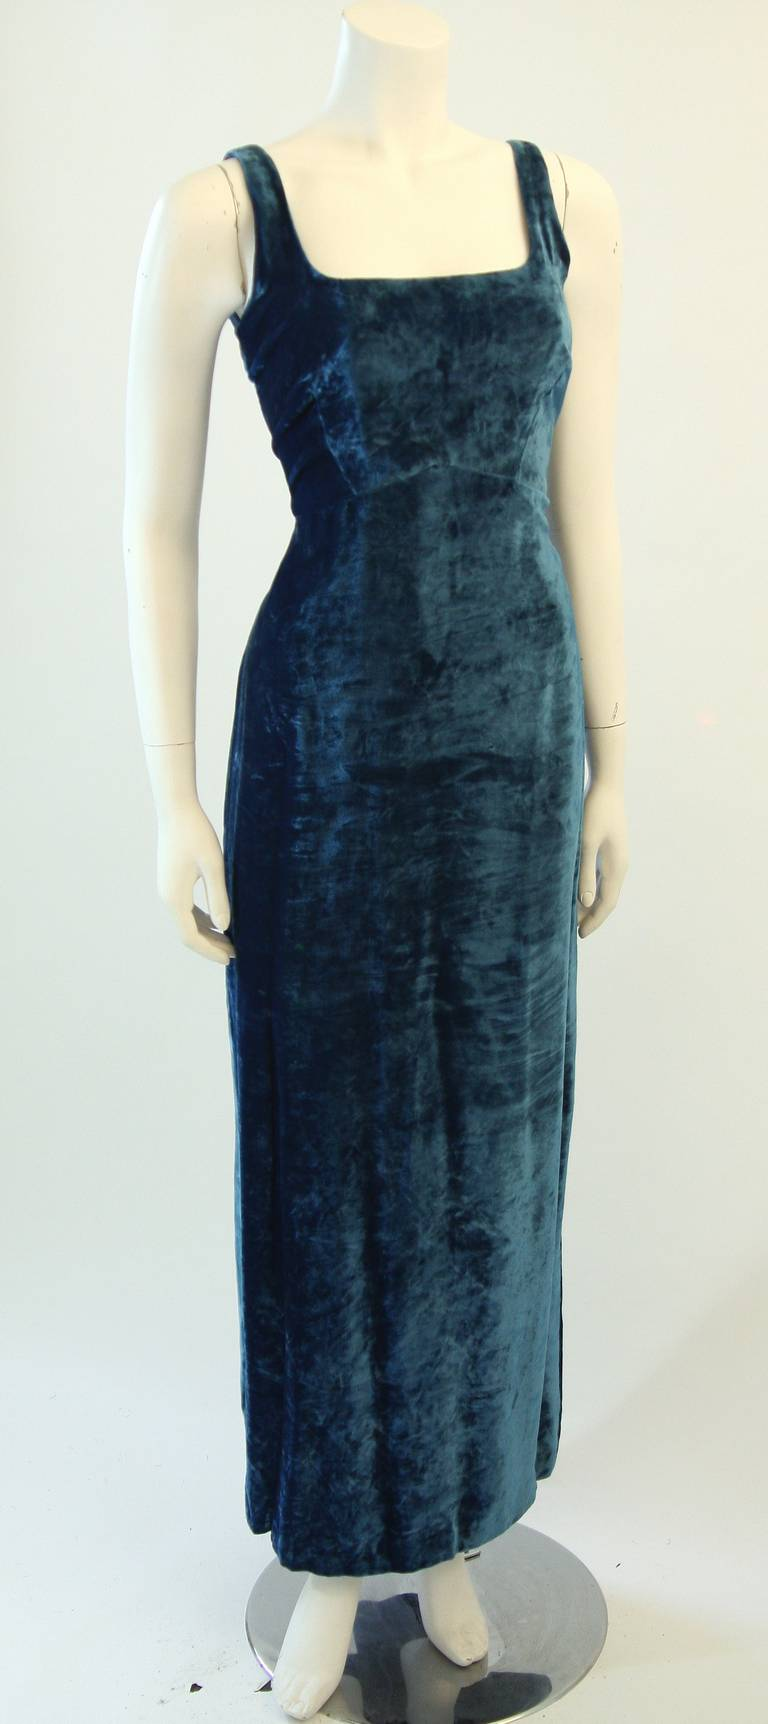 Dolce and Gabbana Jewel Blue Crushed Velvet Gown Circa 2000 Size 42 2